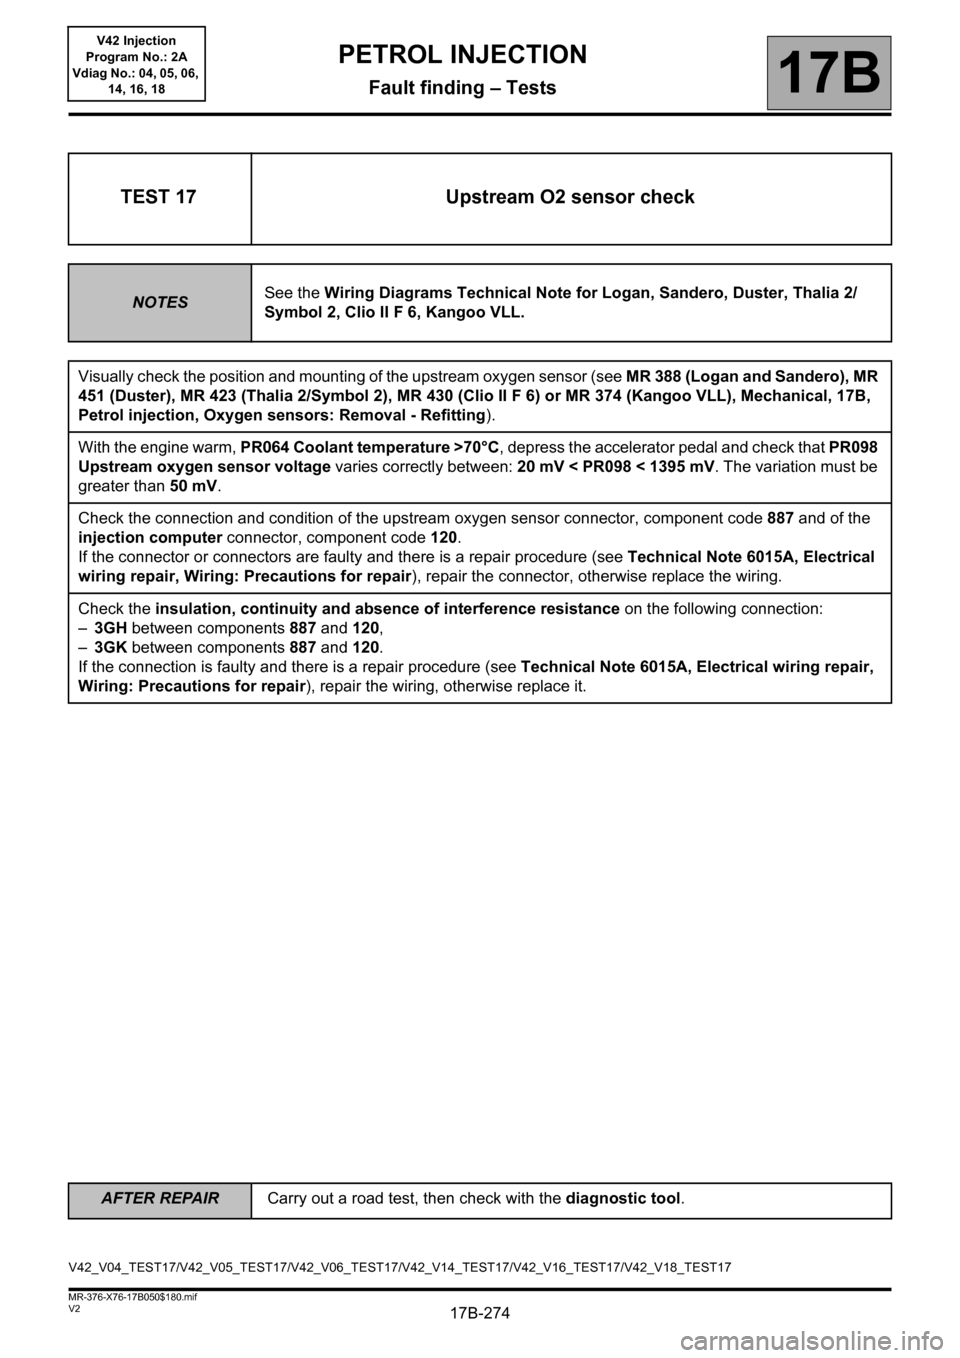 RENAULT KANGOO 2013 X61 / 2.G Petrol V42 Injection Workshop Manual, Page 274